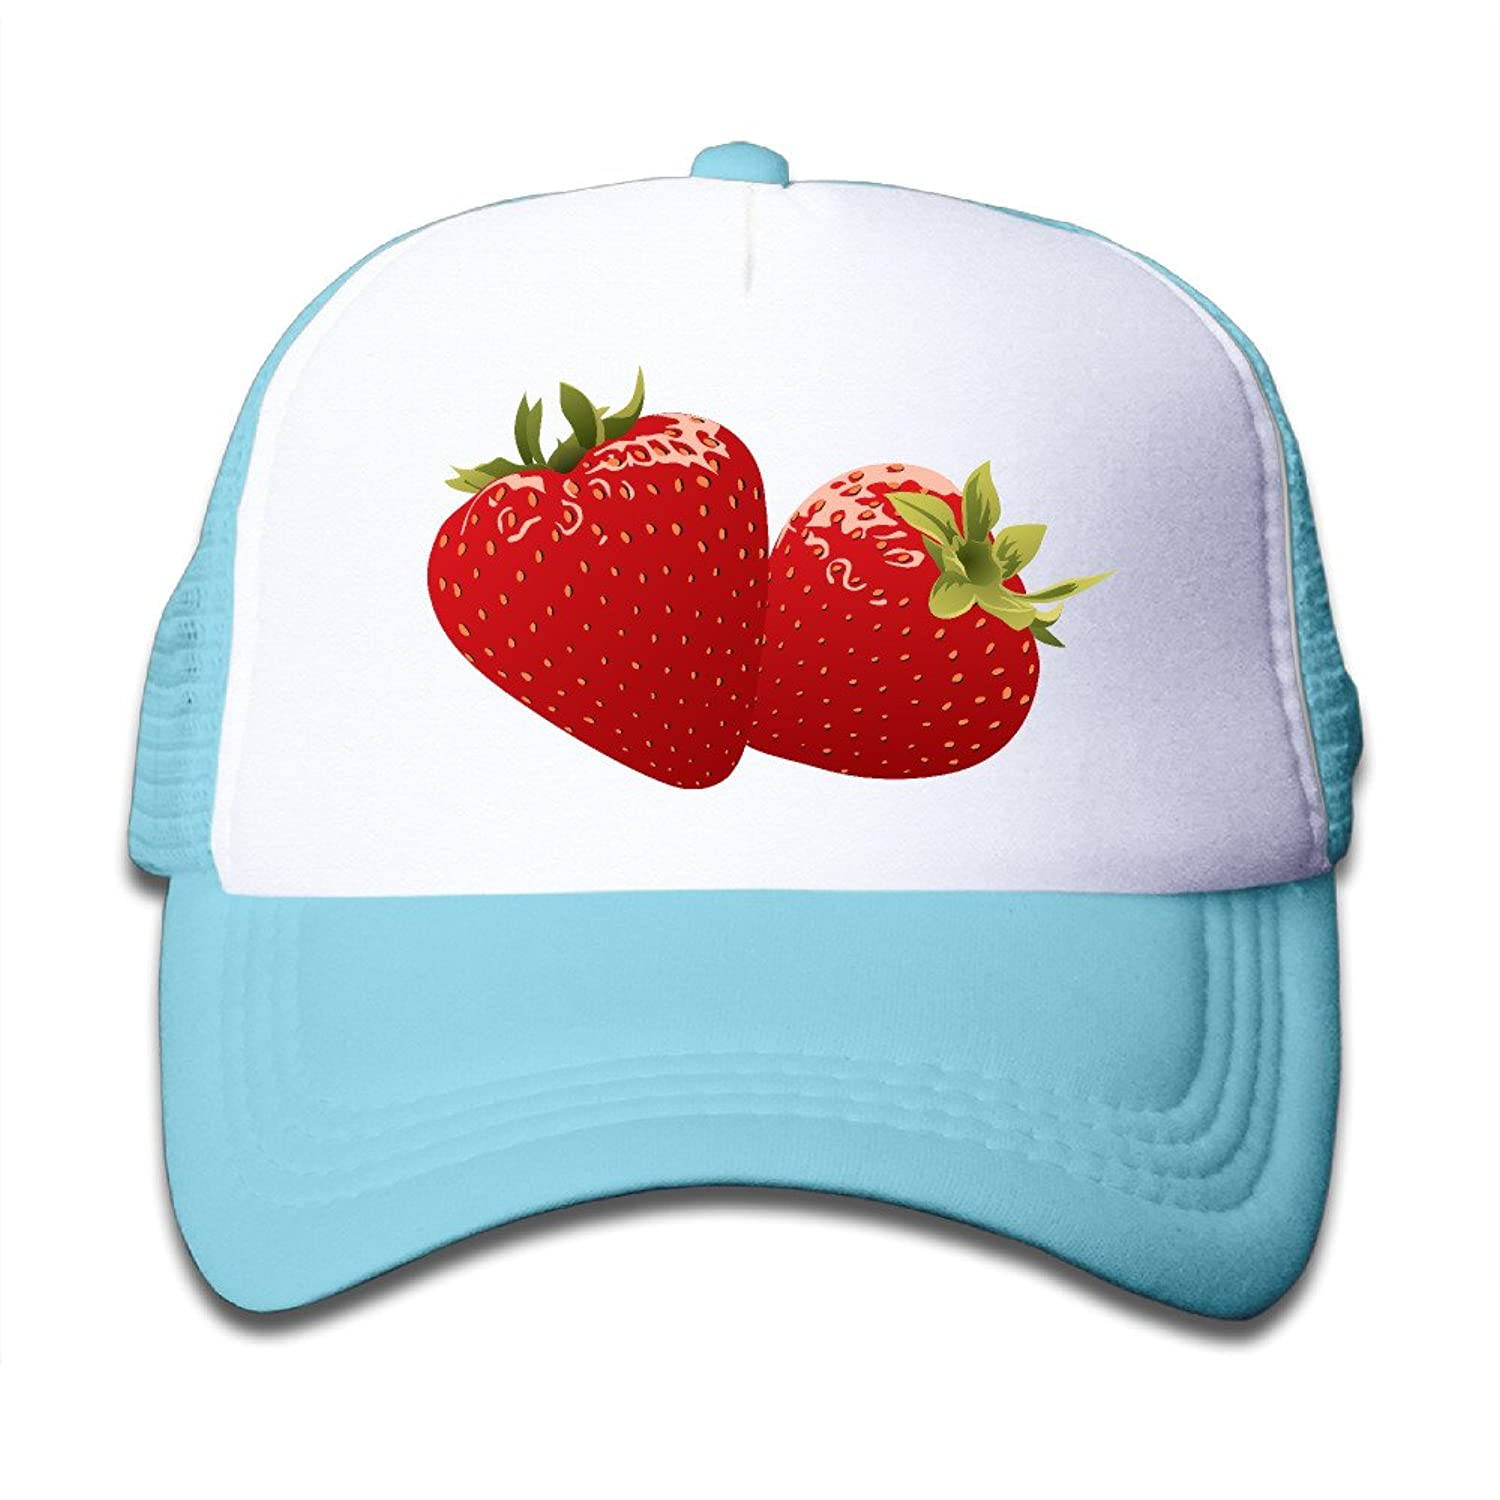 cheap Eqq Strawberry Fashion Toldder Kid's Cute Adjustable Mesh Cap Hats Travel School Cap